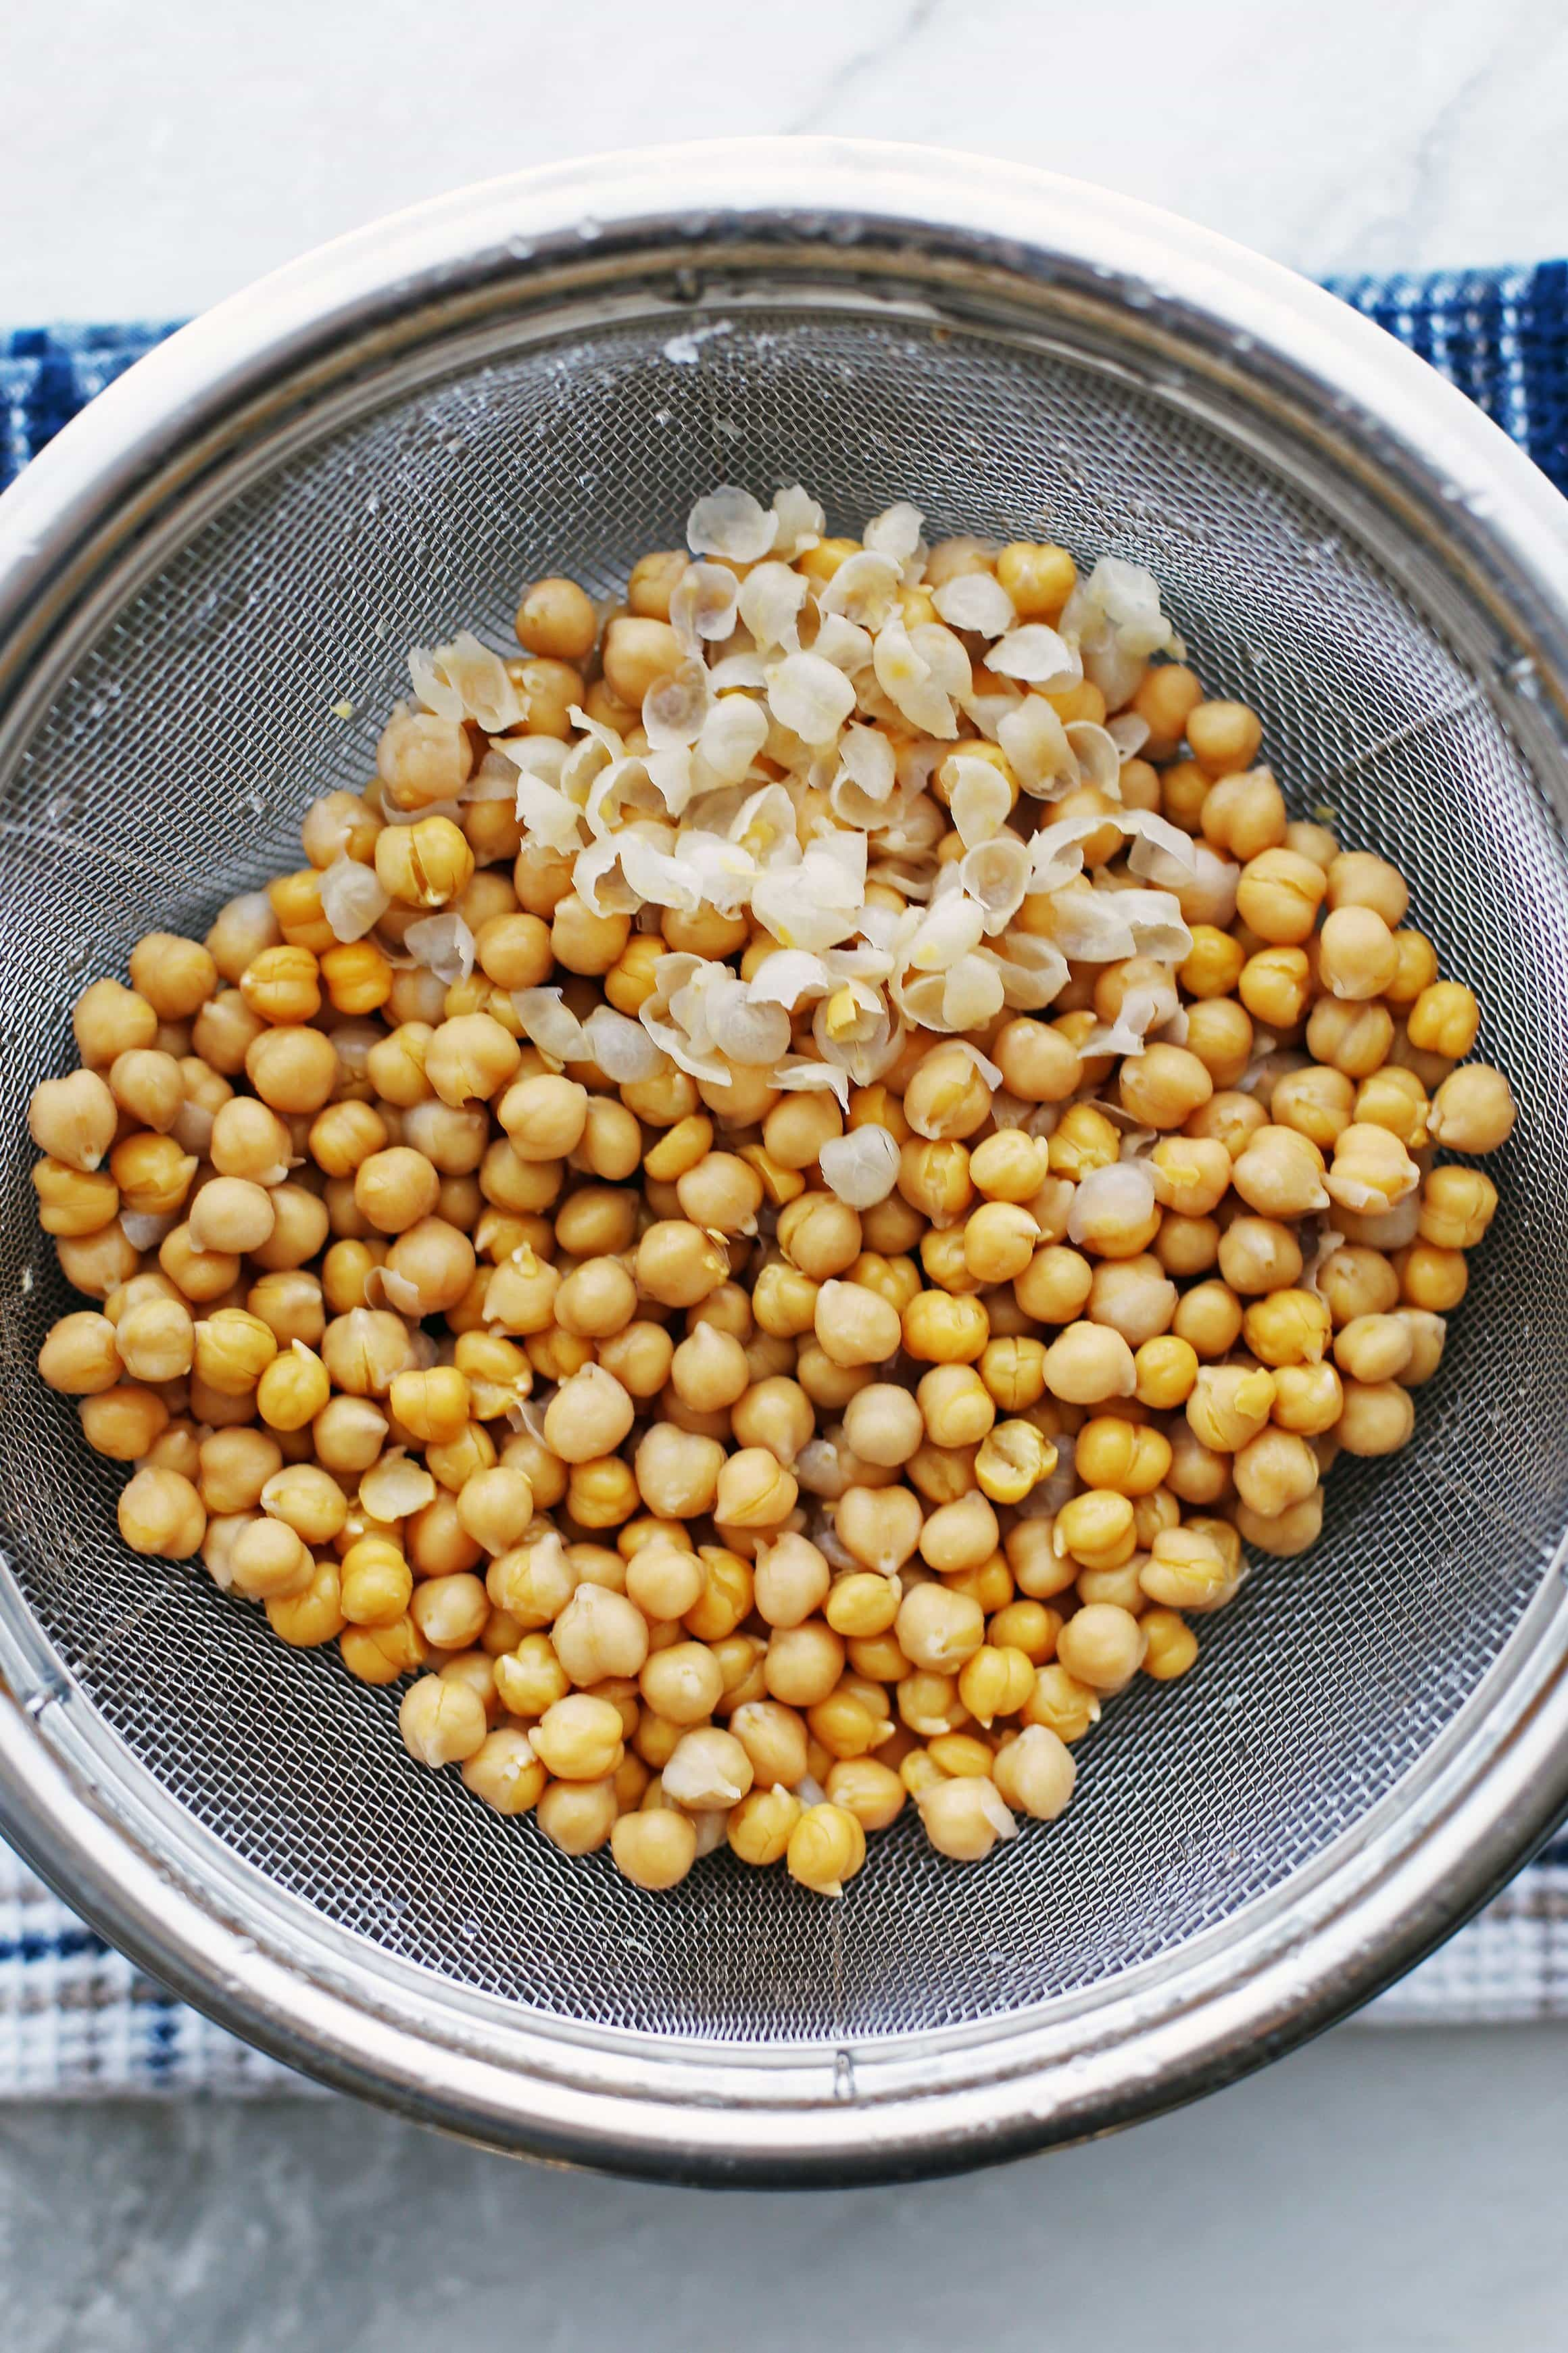 Rinsed and drained cooked chickpeas in a wire strainer.